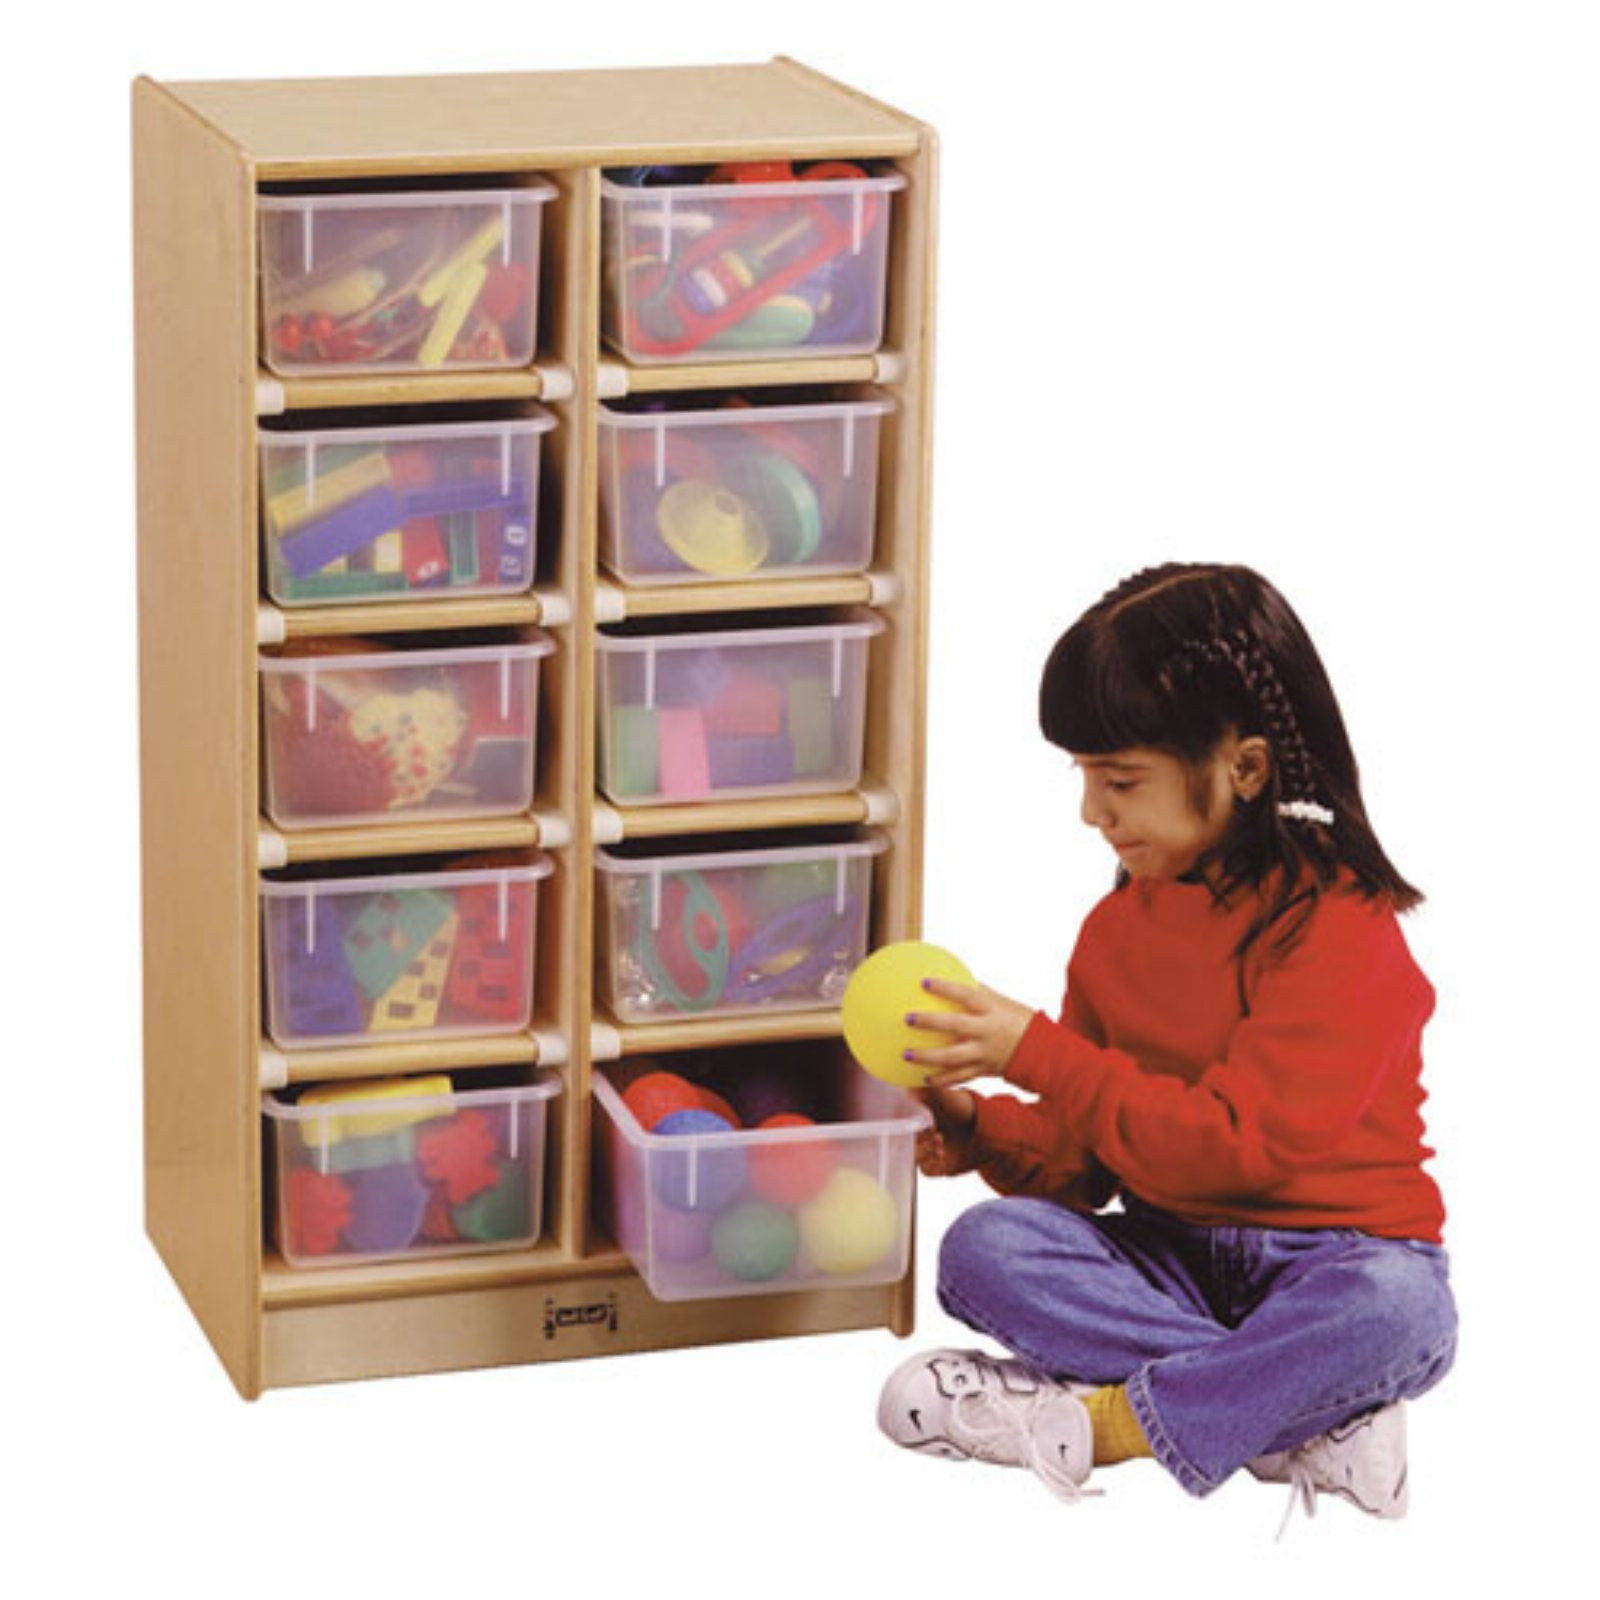 Kydz 10 Tray Mobile Storage Cubbie